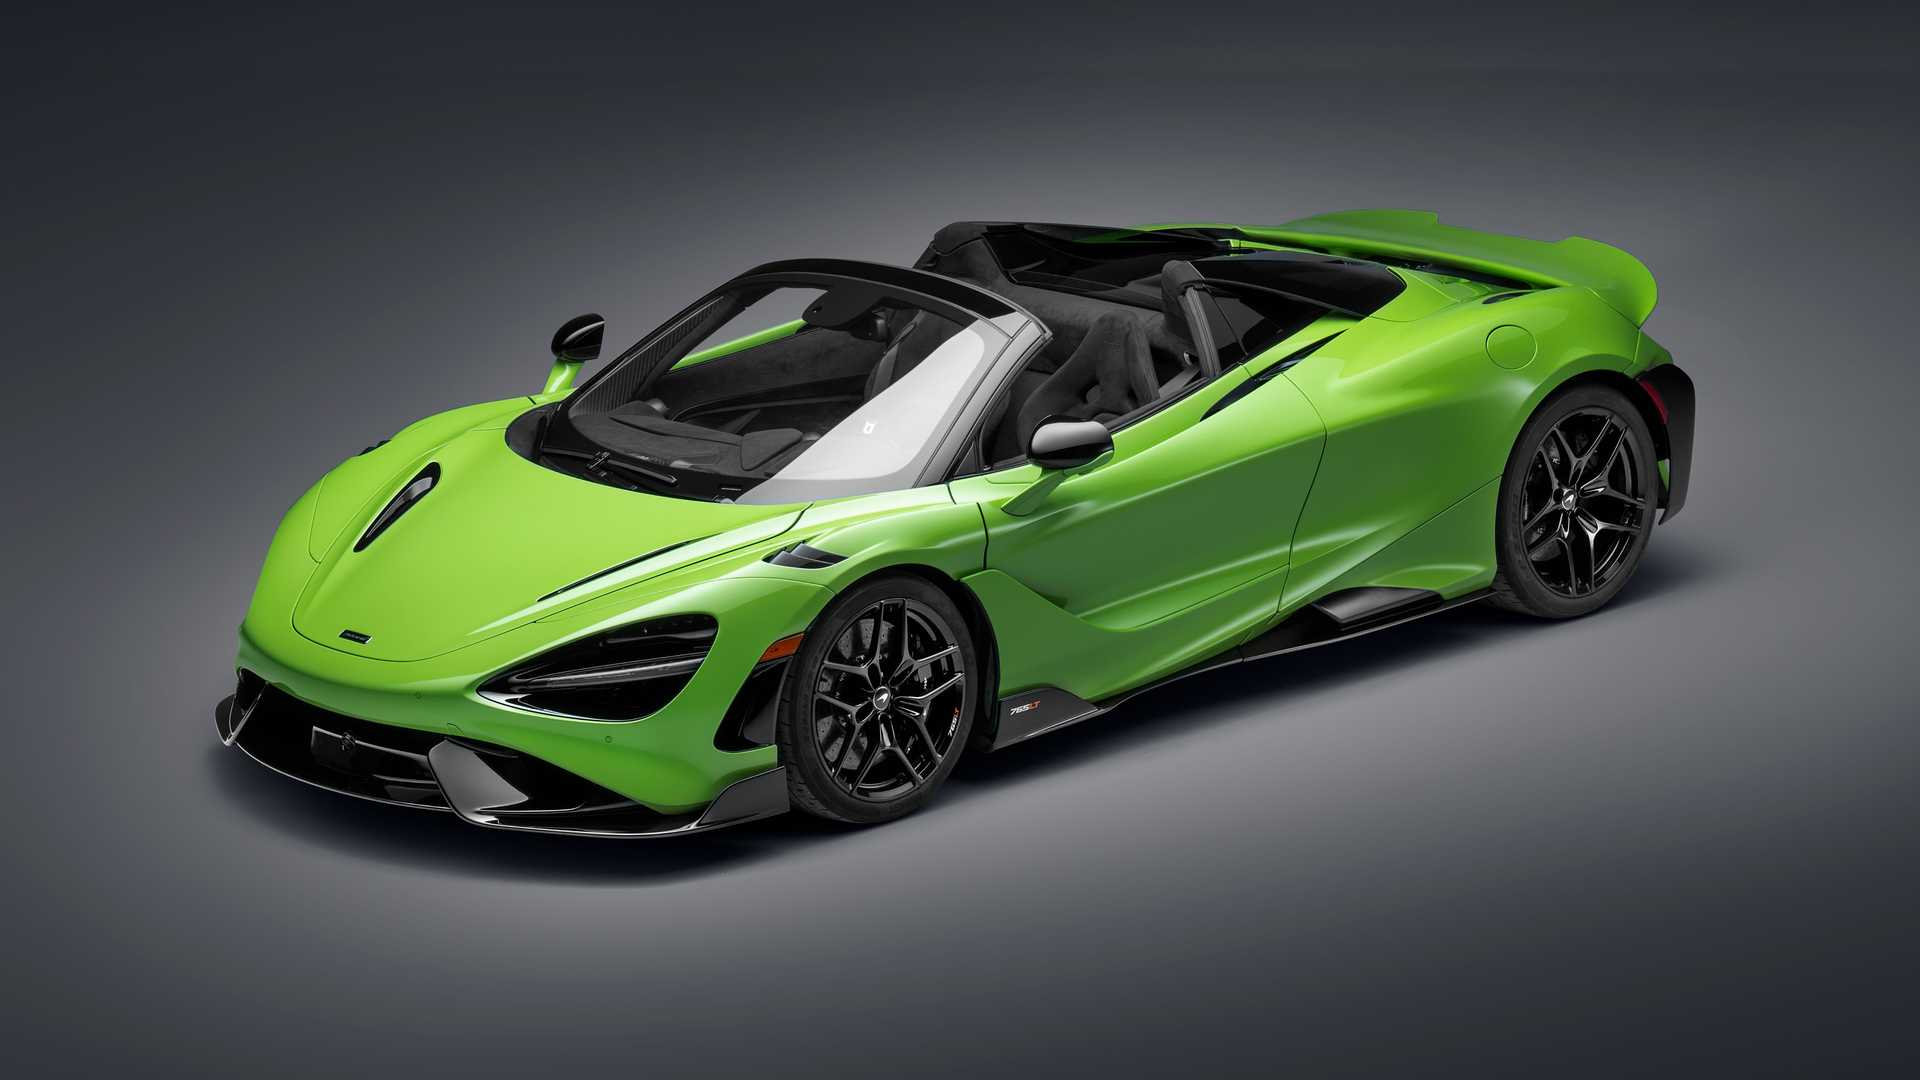 McLaren has officially introduced the 765LT Spider, an open-top supercar limited to 765 production units. One-third of the batch will be sold in the United States starting from $407,000.